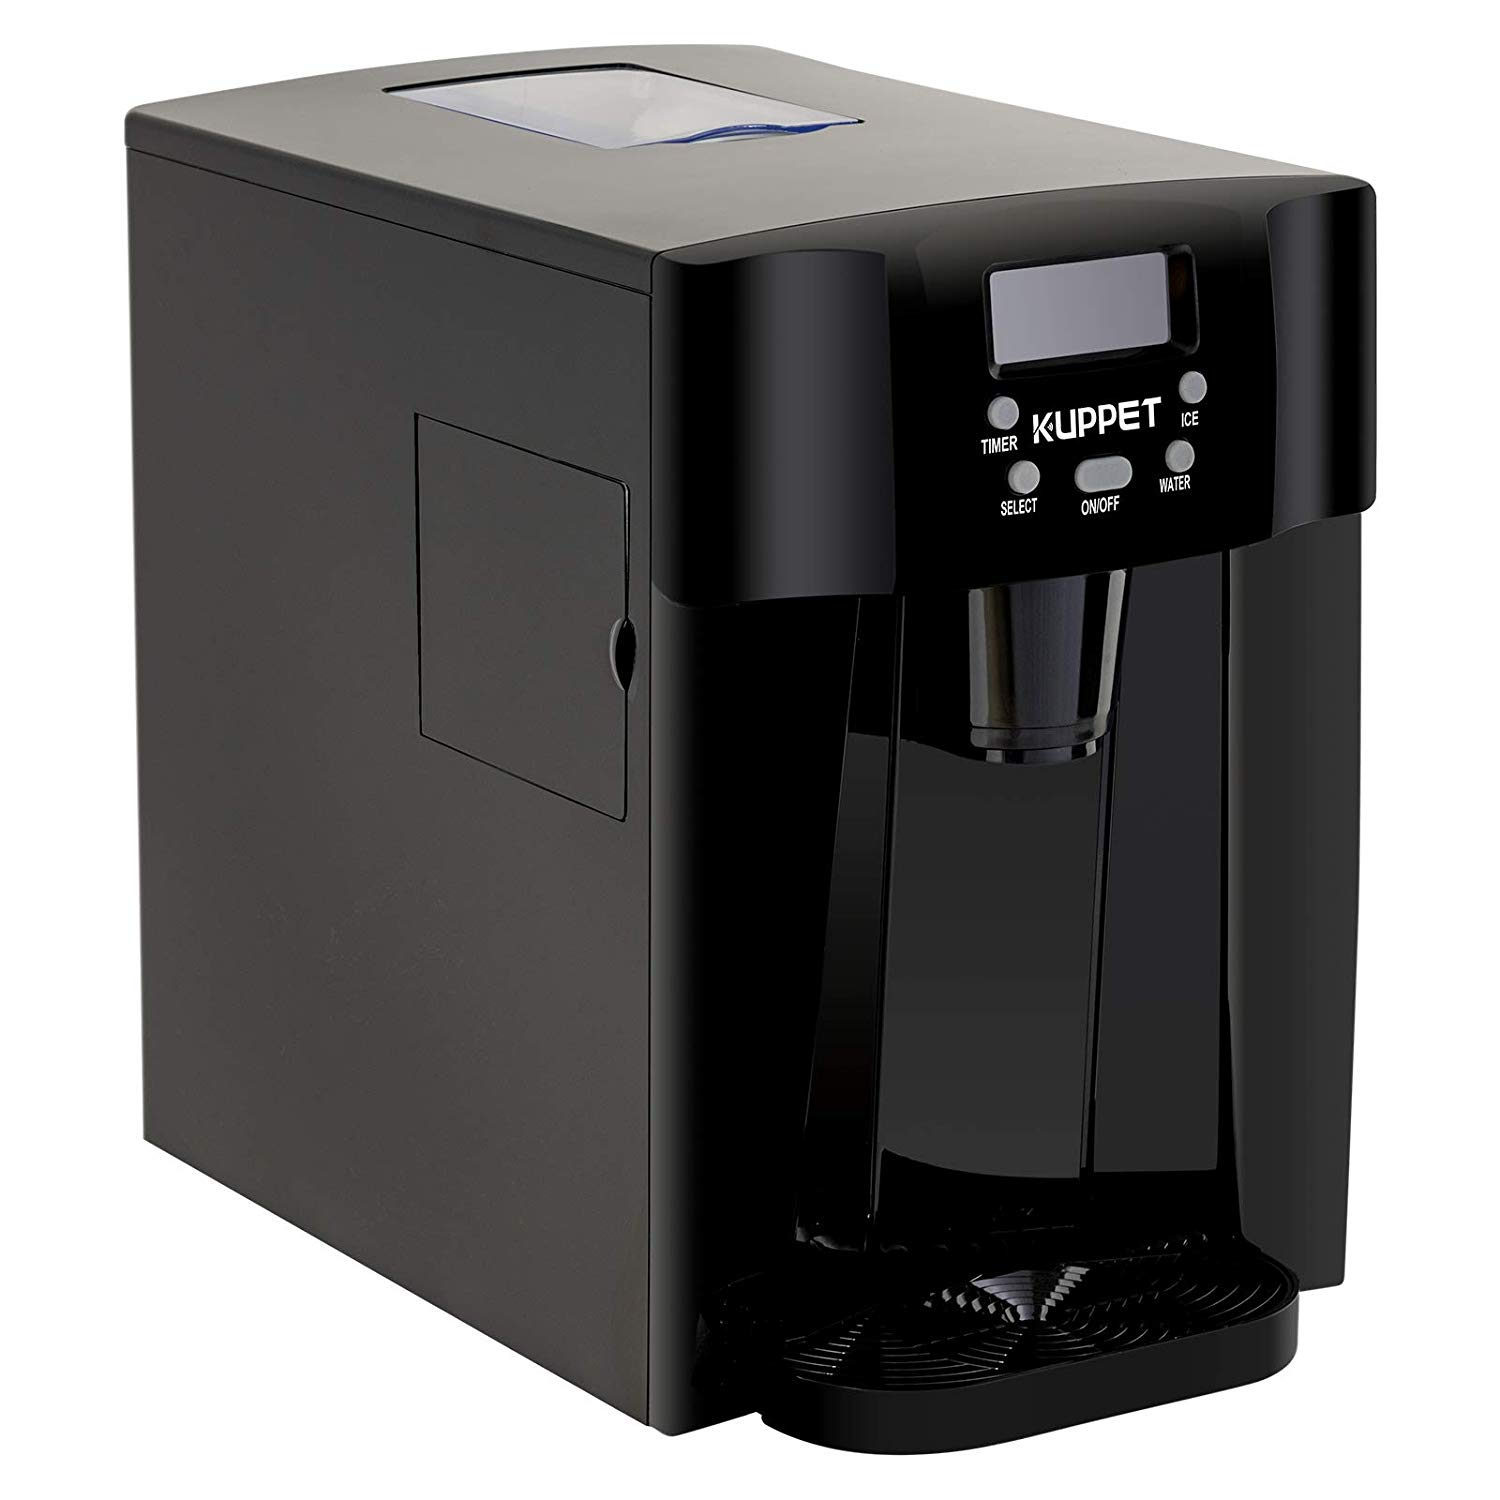 LED Display Silver Produces 36 lbs Ice in 24 Hours Ready in 6min KUPPET 2 in 1 Countertop Ice Maker